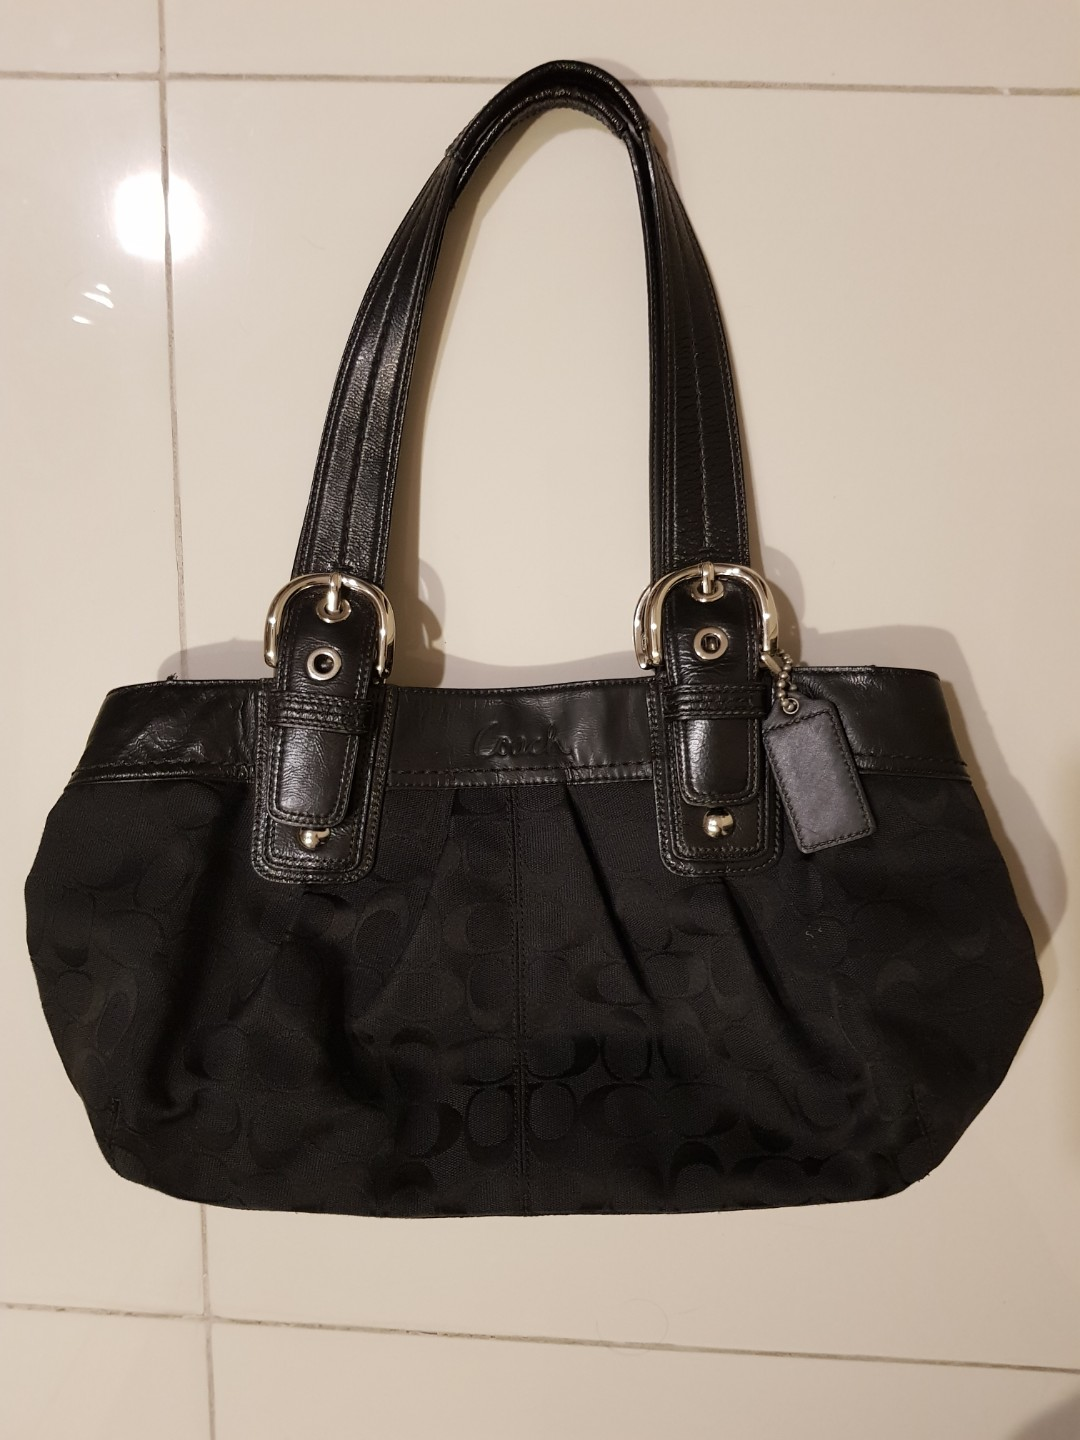 Coach Bag - genuine, rarely used, in very good condition, metal parts no  scratches